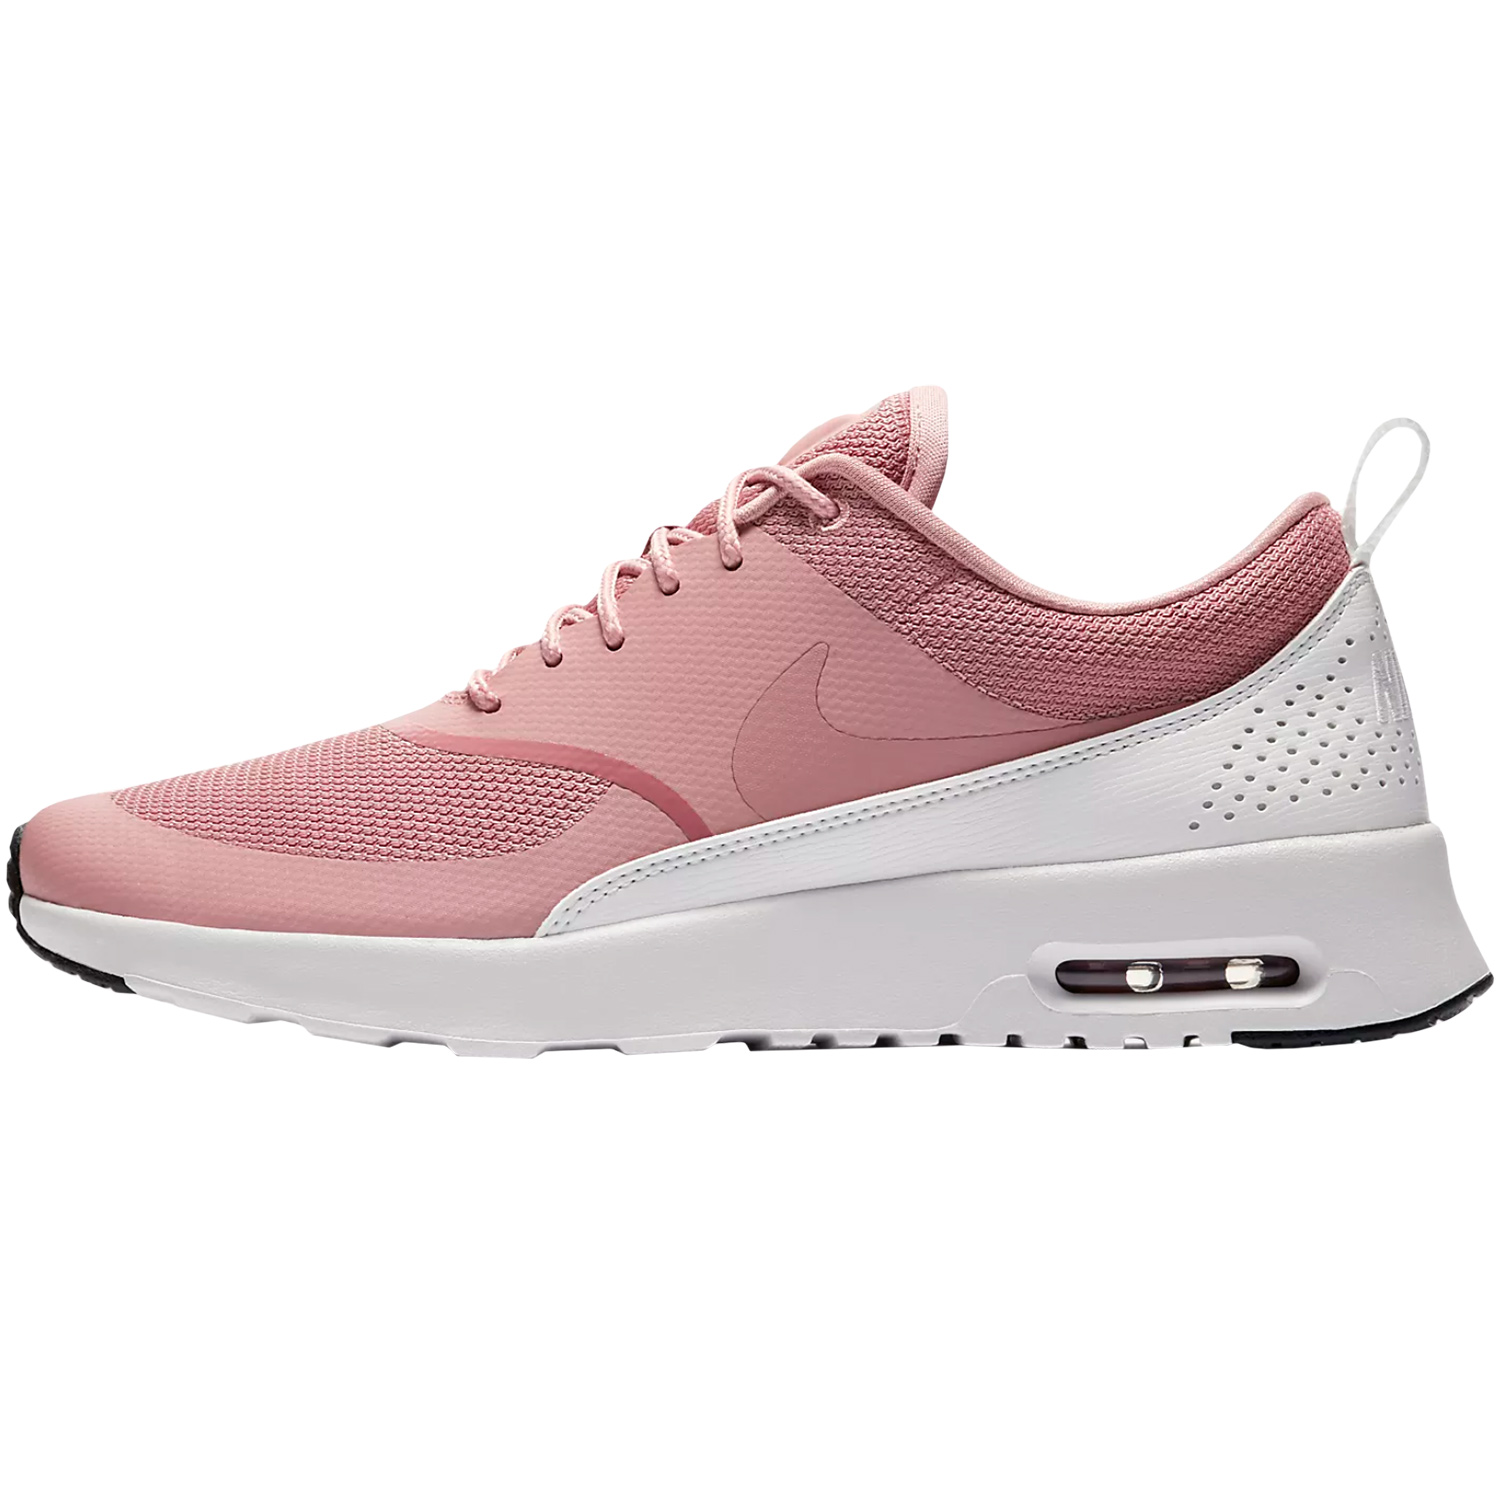 nike wmns air max thea damen sneaker pink wei 599409 614. Black Bedroom Furniture Sets. Home Design Ideas